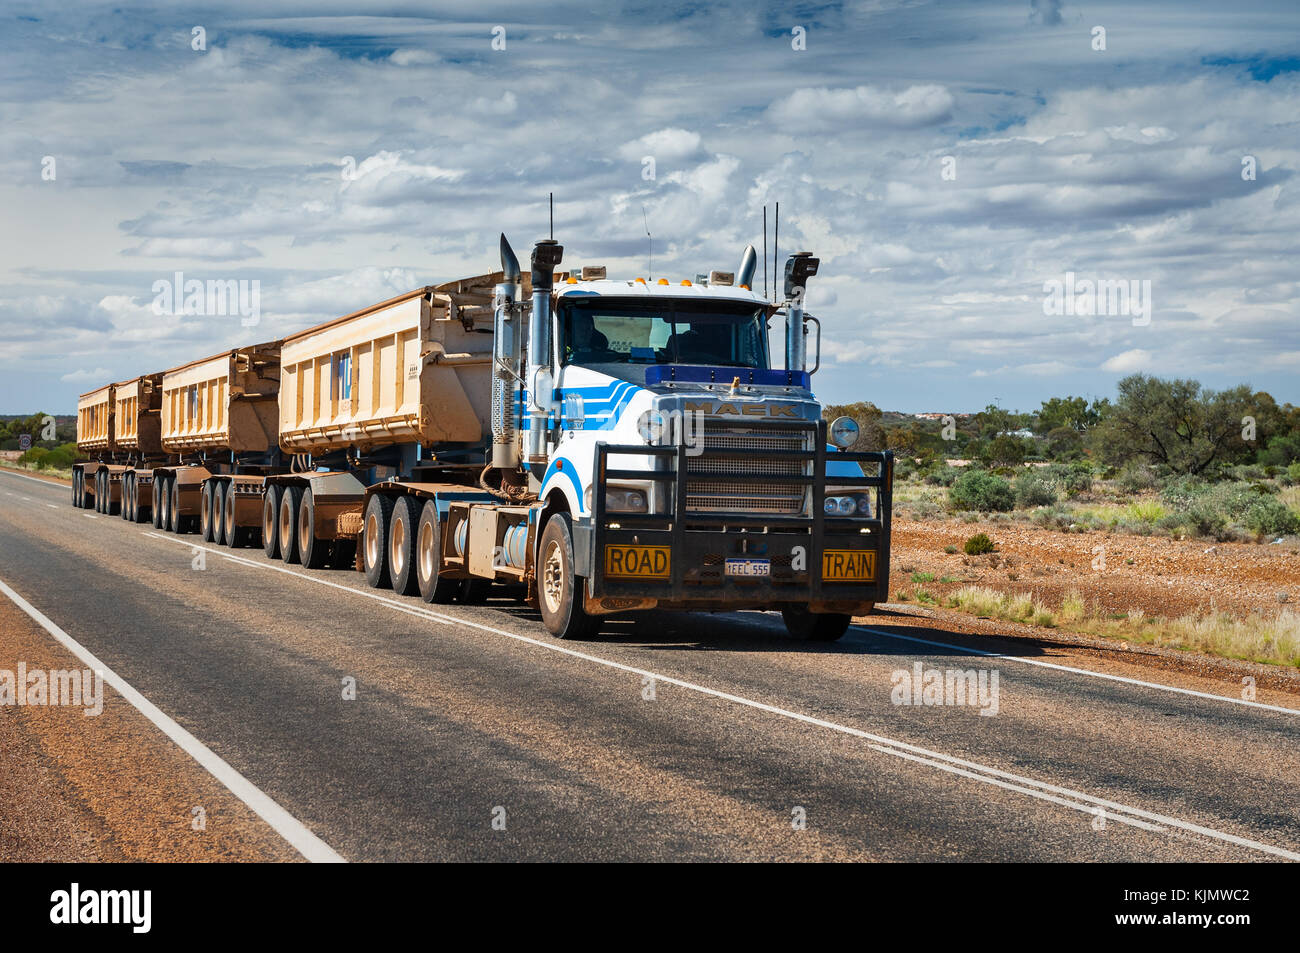 Road Train in the outback of Western Australia. - Stock Image